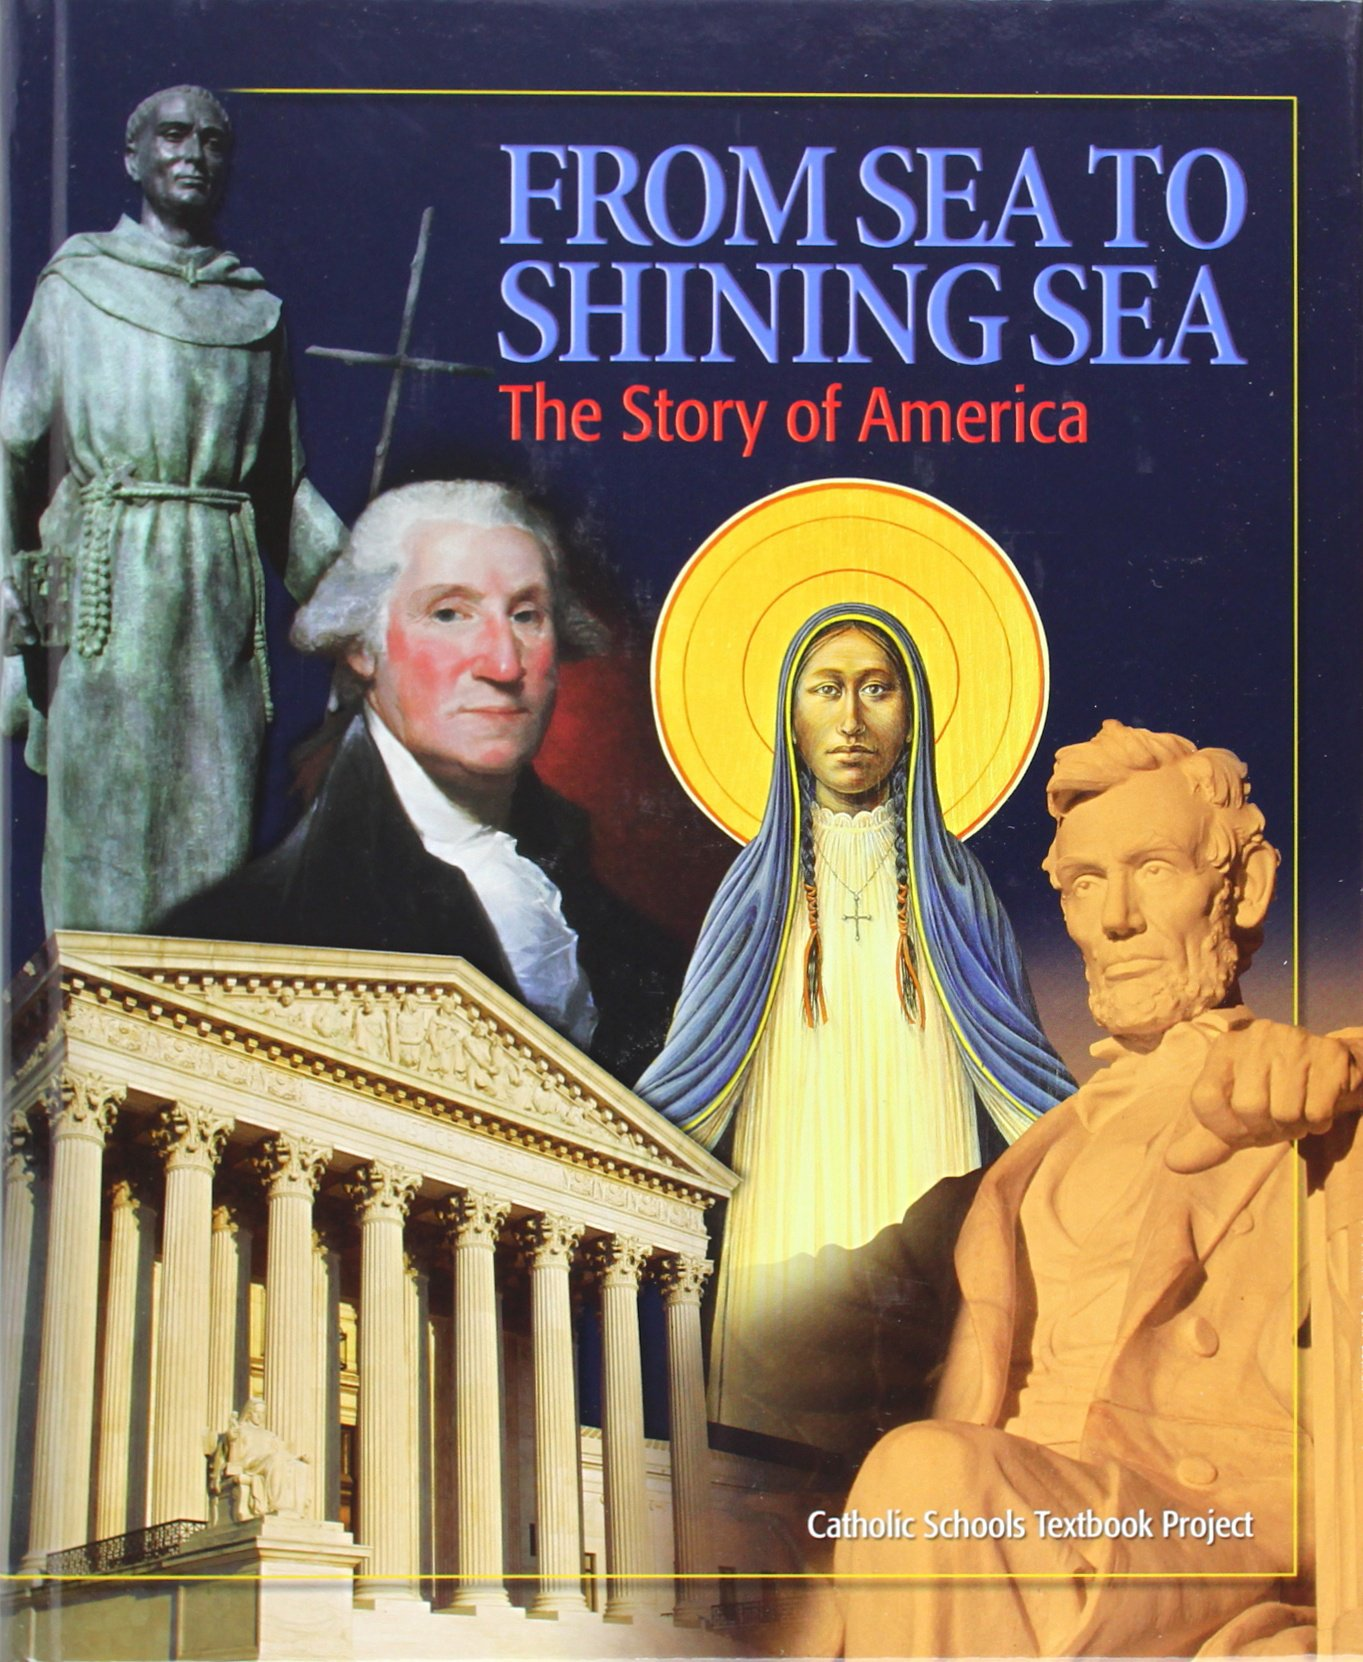 From Sea to Shining Sea: The Story of America